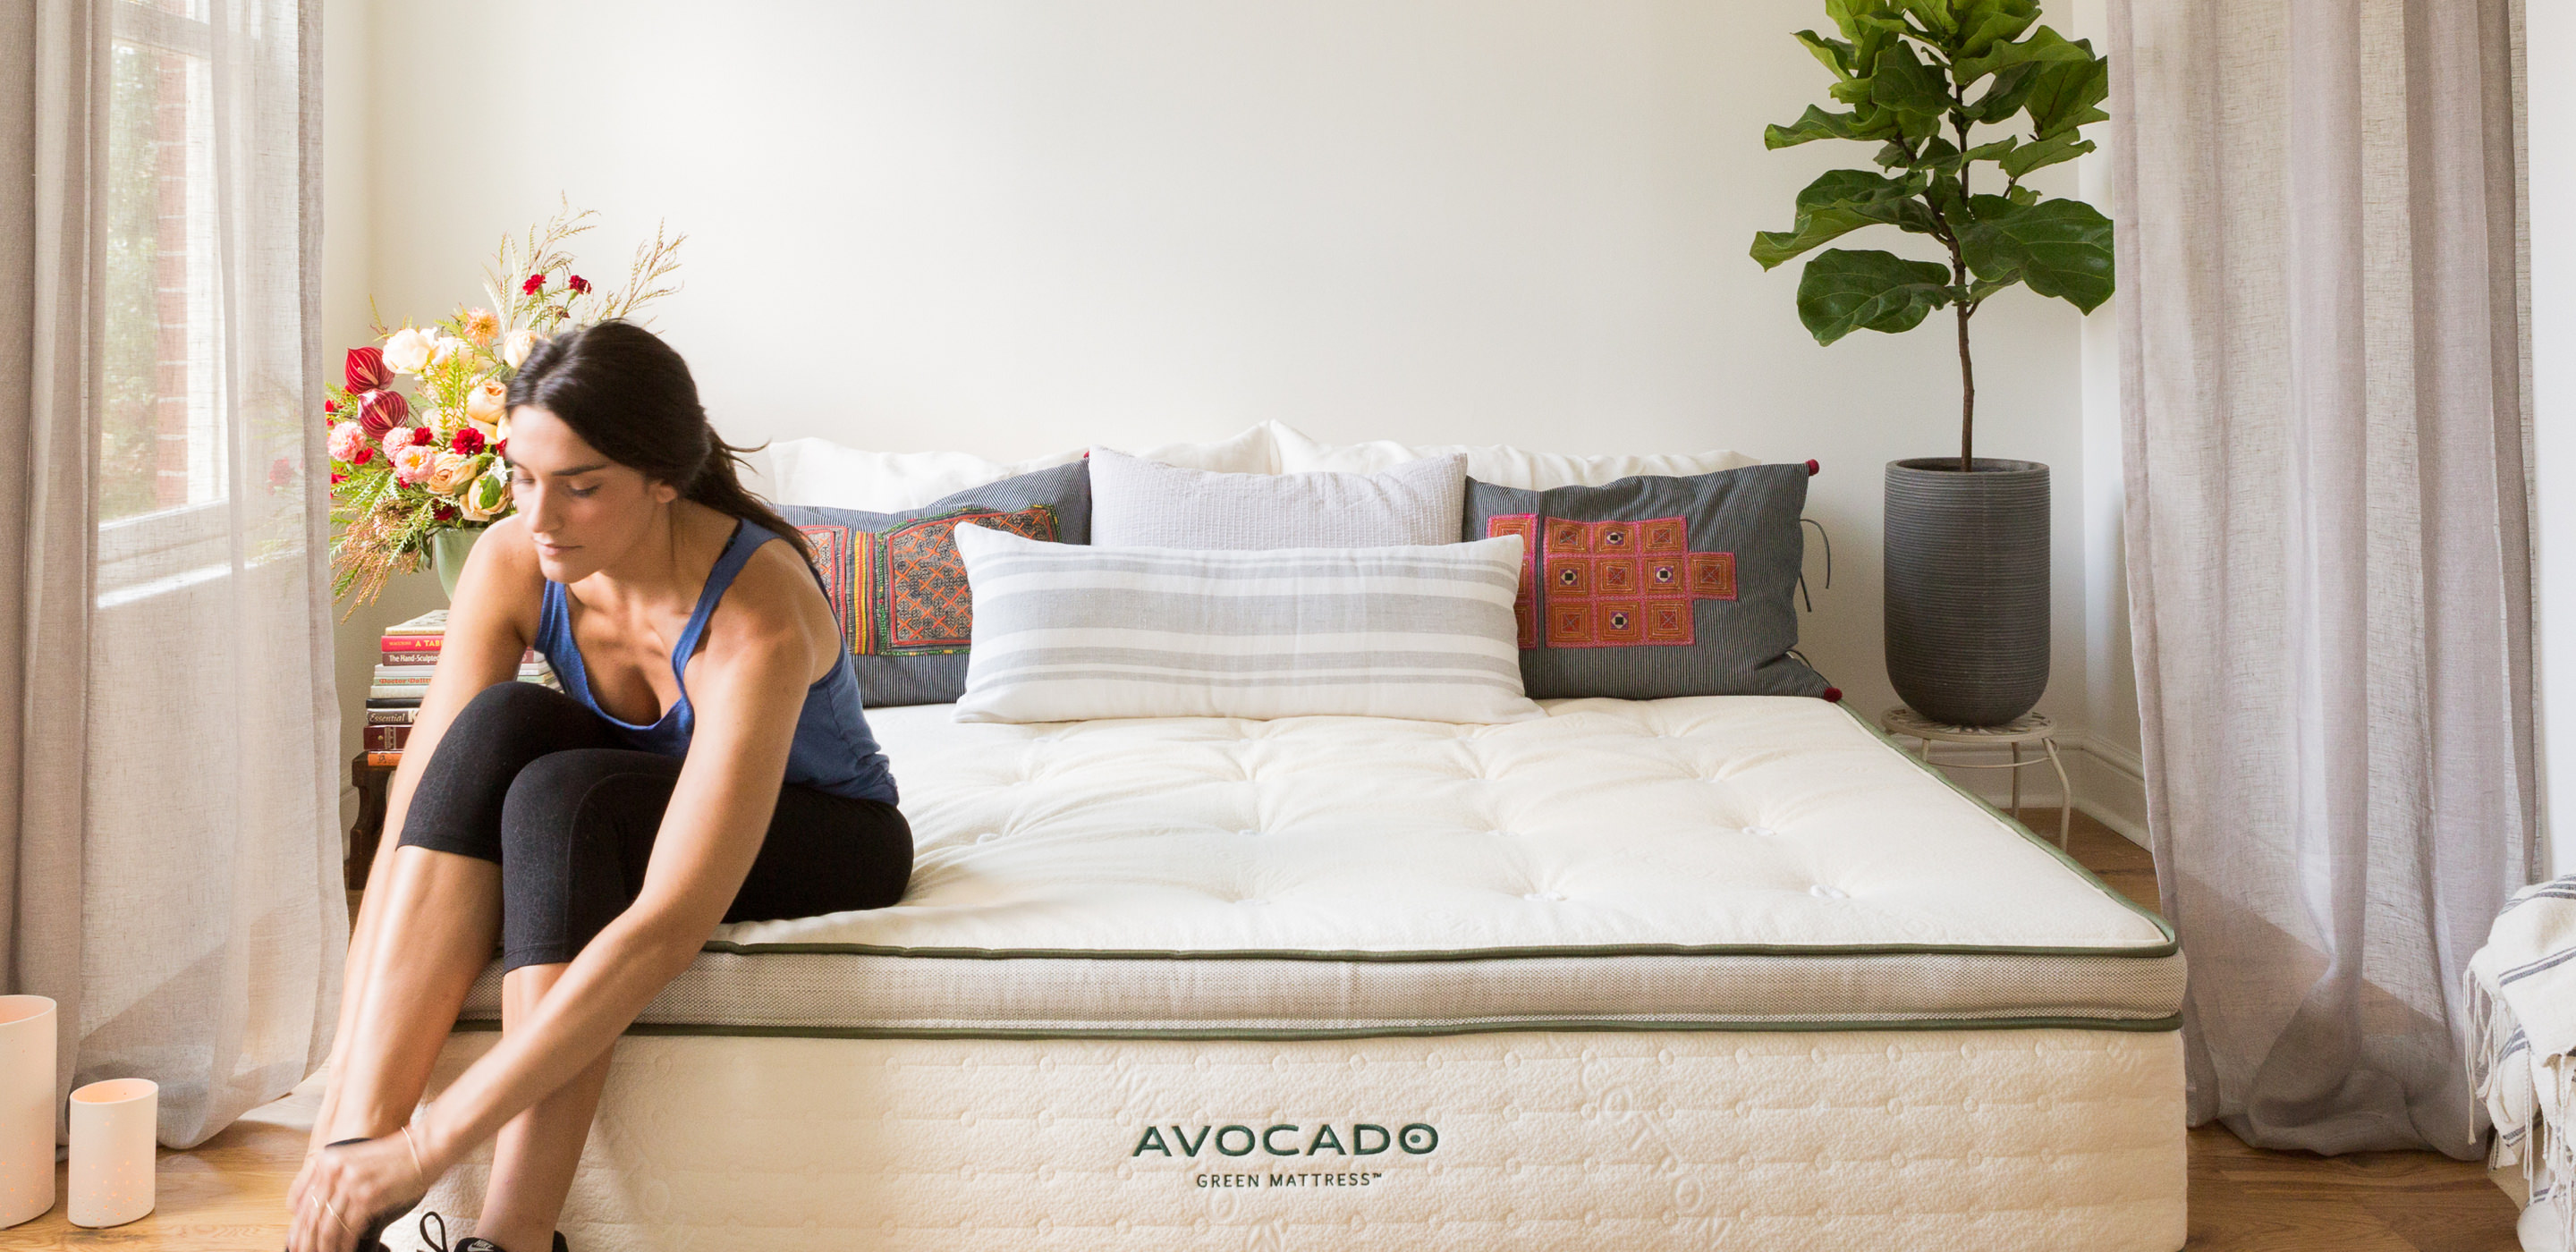 1569411566 143 our 2019 avocado green mattress review experience the best - Our 2019 Avocado Green Mattress Review: Experience the Best